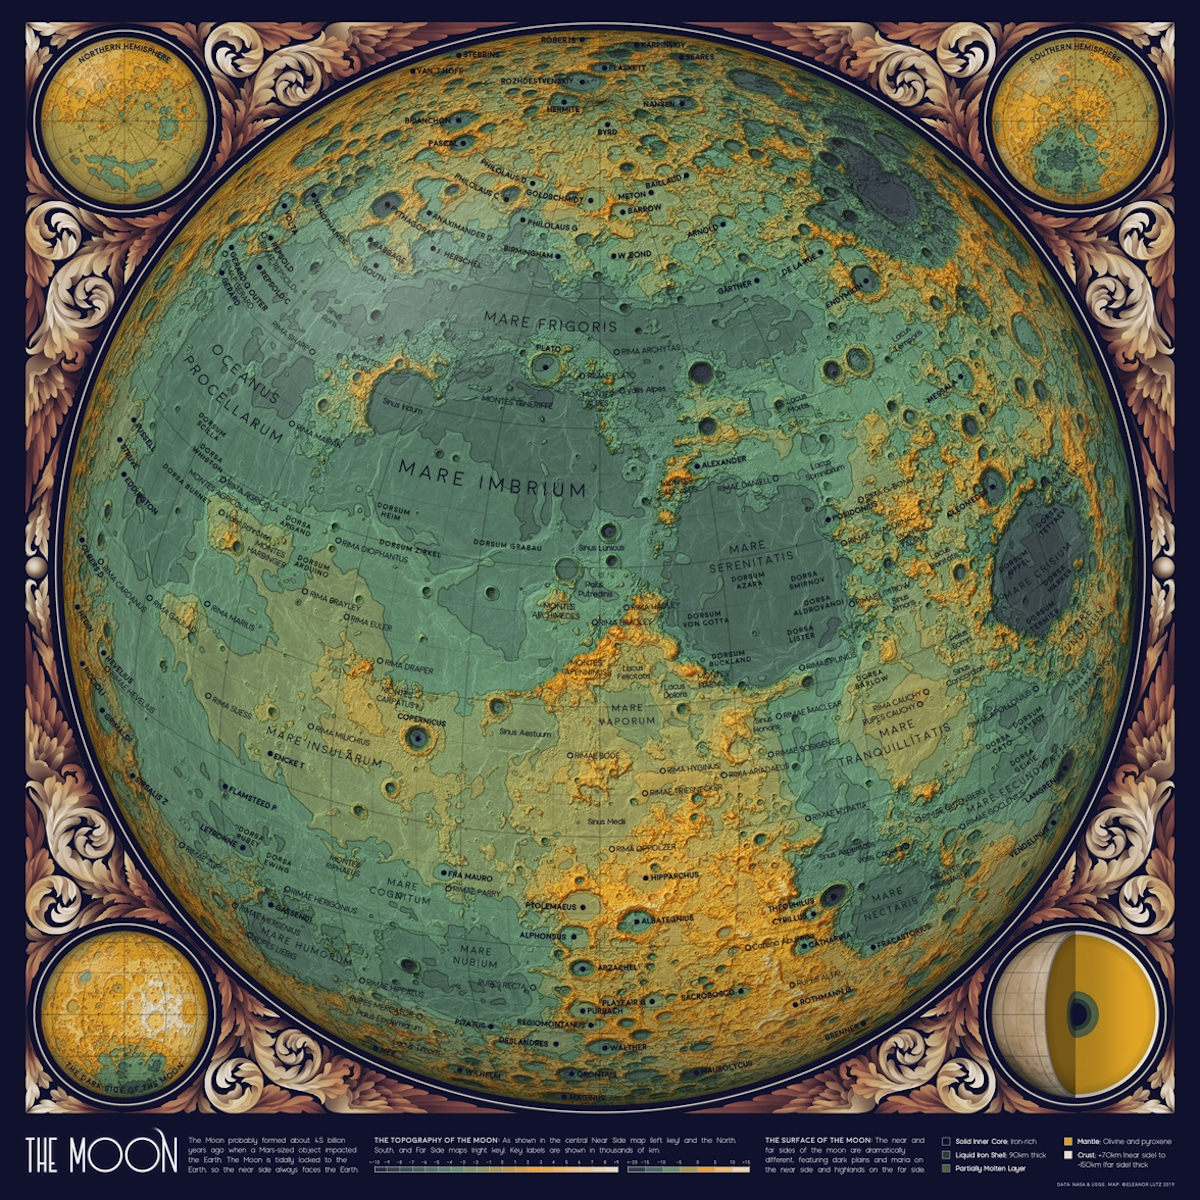 Vintage Looking Map of the Moon